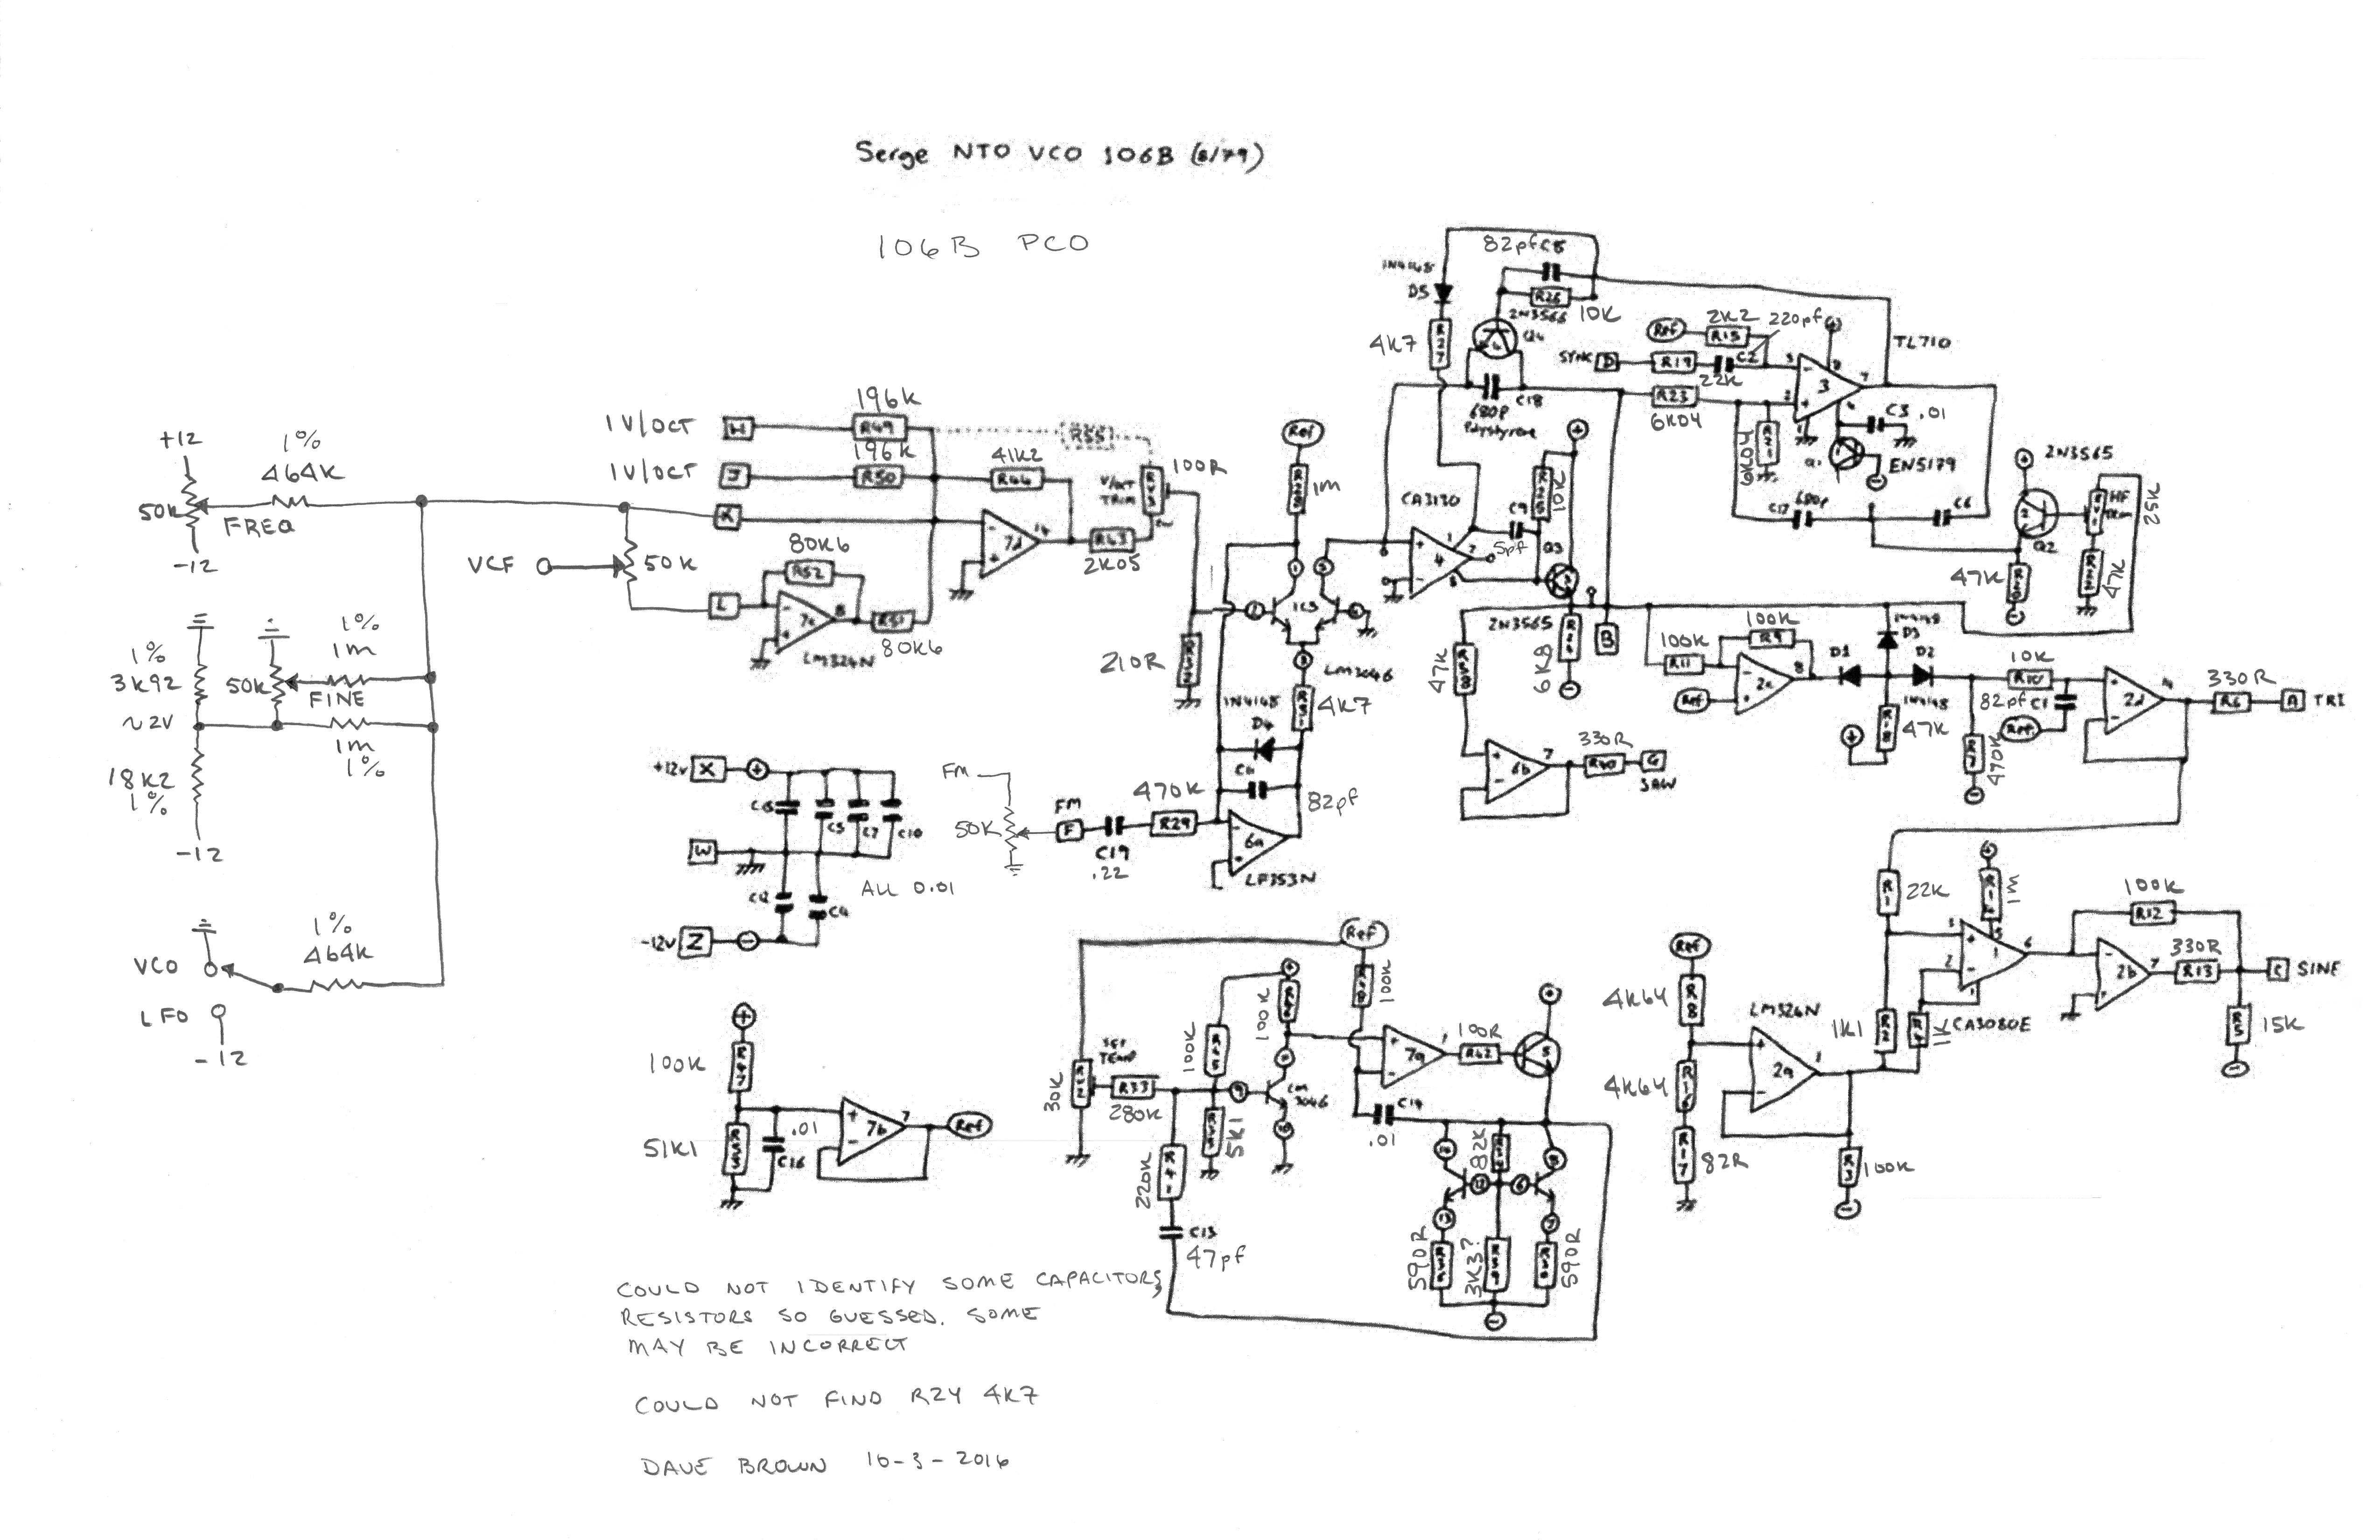 york furnace wiring schematic york image wiring york thermostat wiring diagram york auto wiring diagram schematic on york furnace wiring schematic